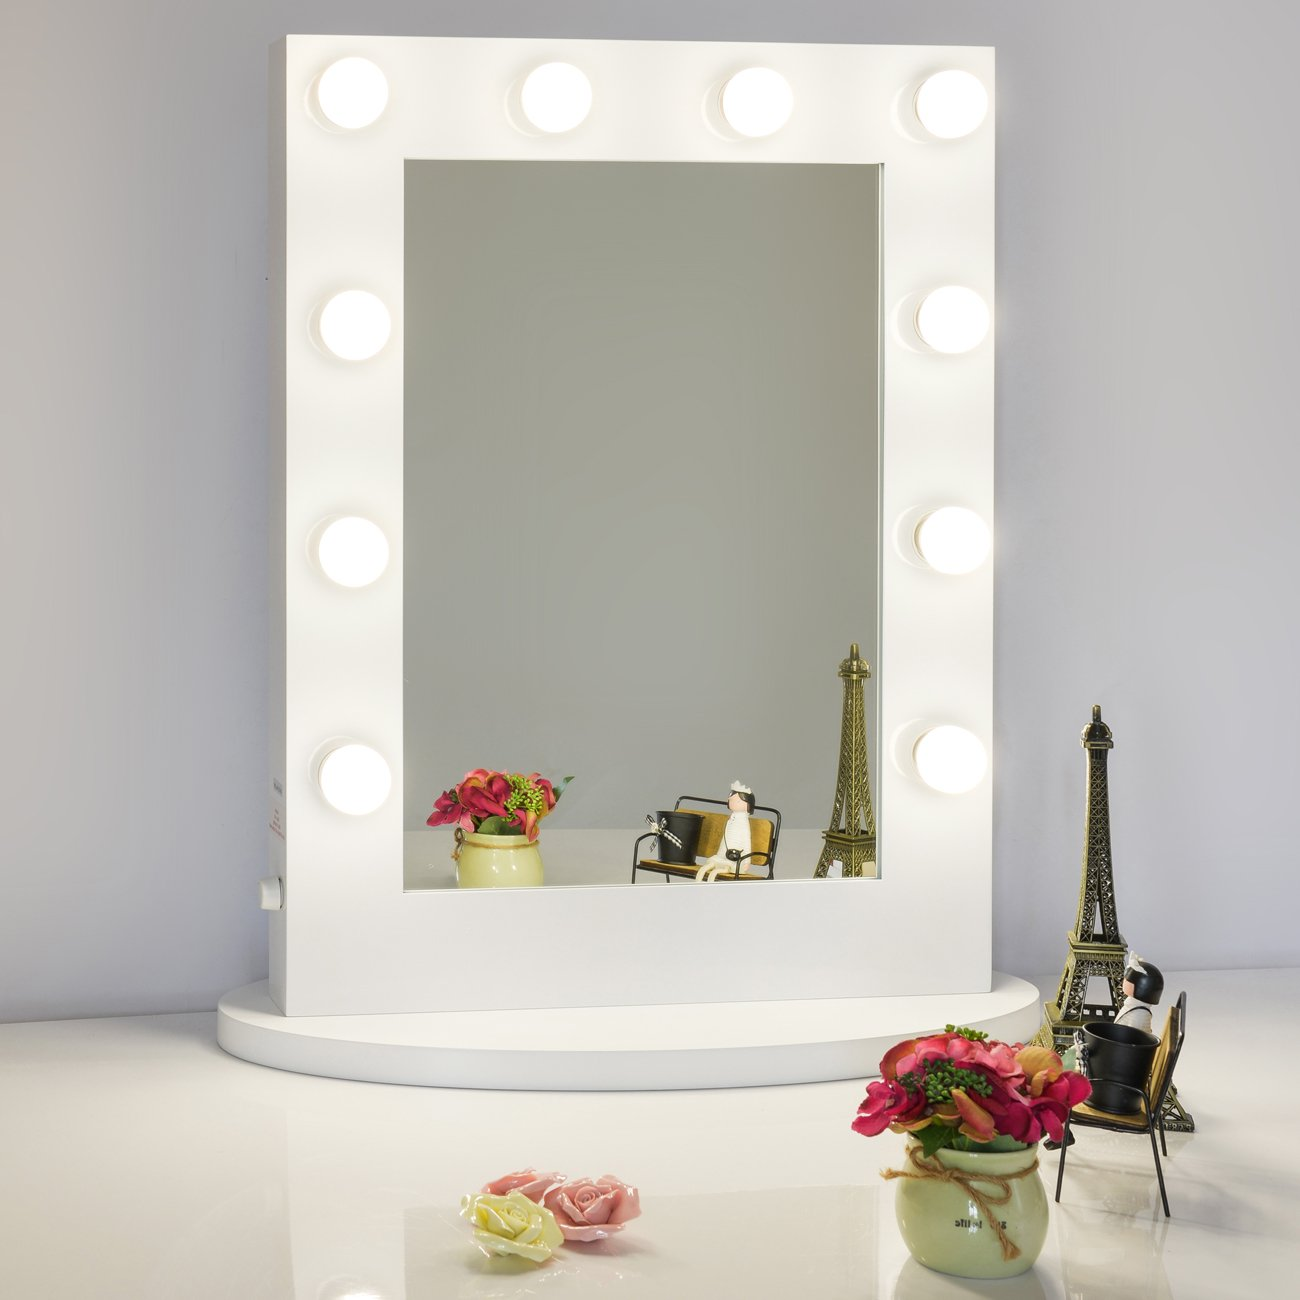 chende white hollywood tabletops lighted makeup mirror vanity with dimmer ebay. Black Bedroom Furniture Sets. Home Design Ideas